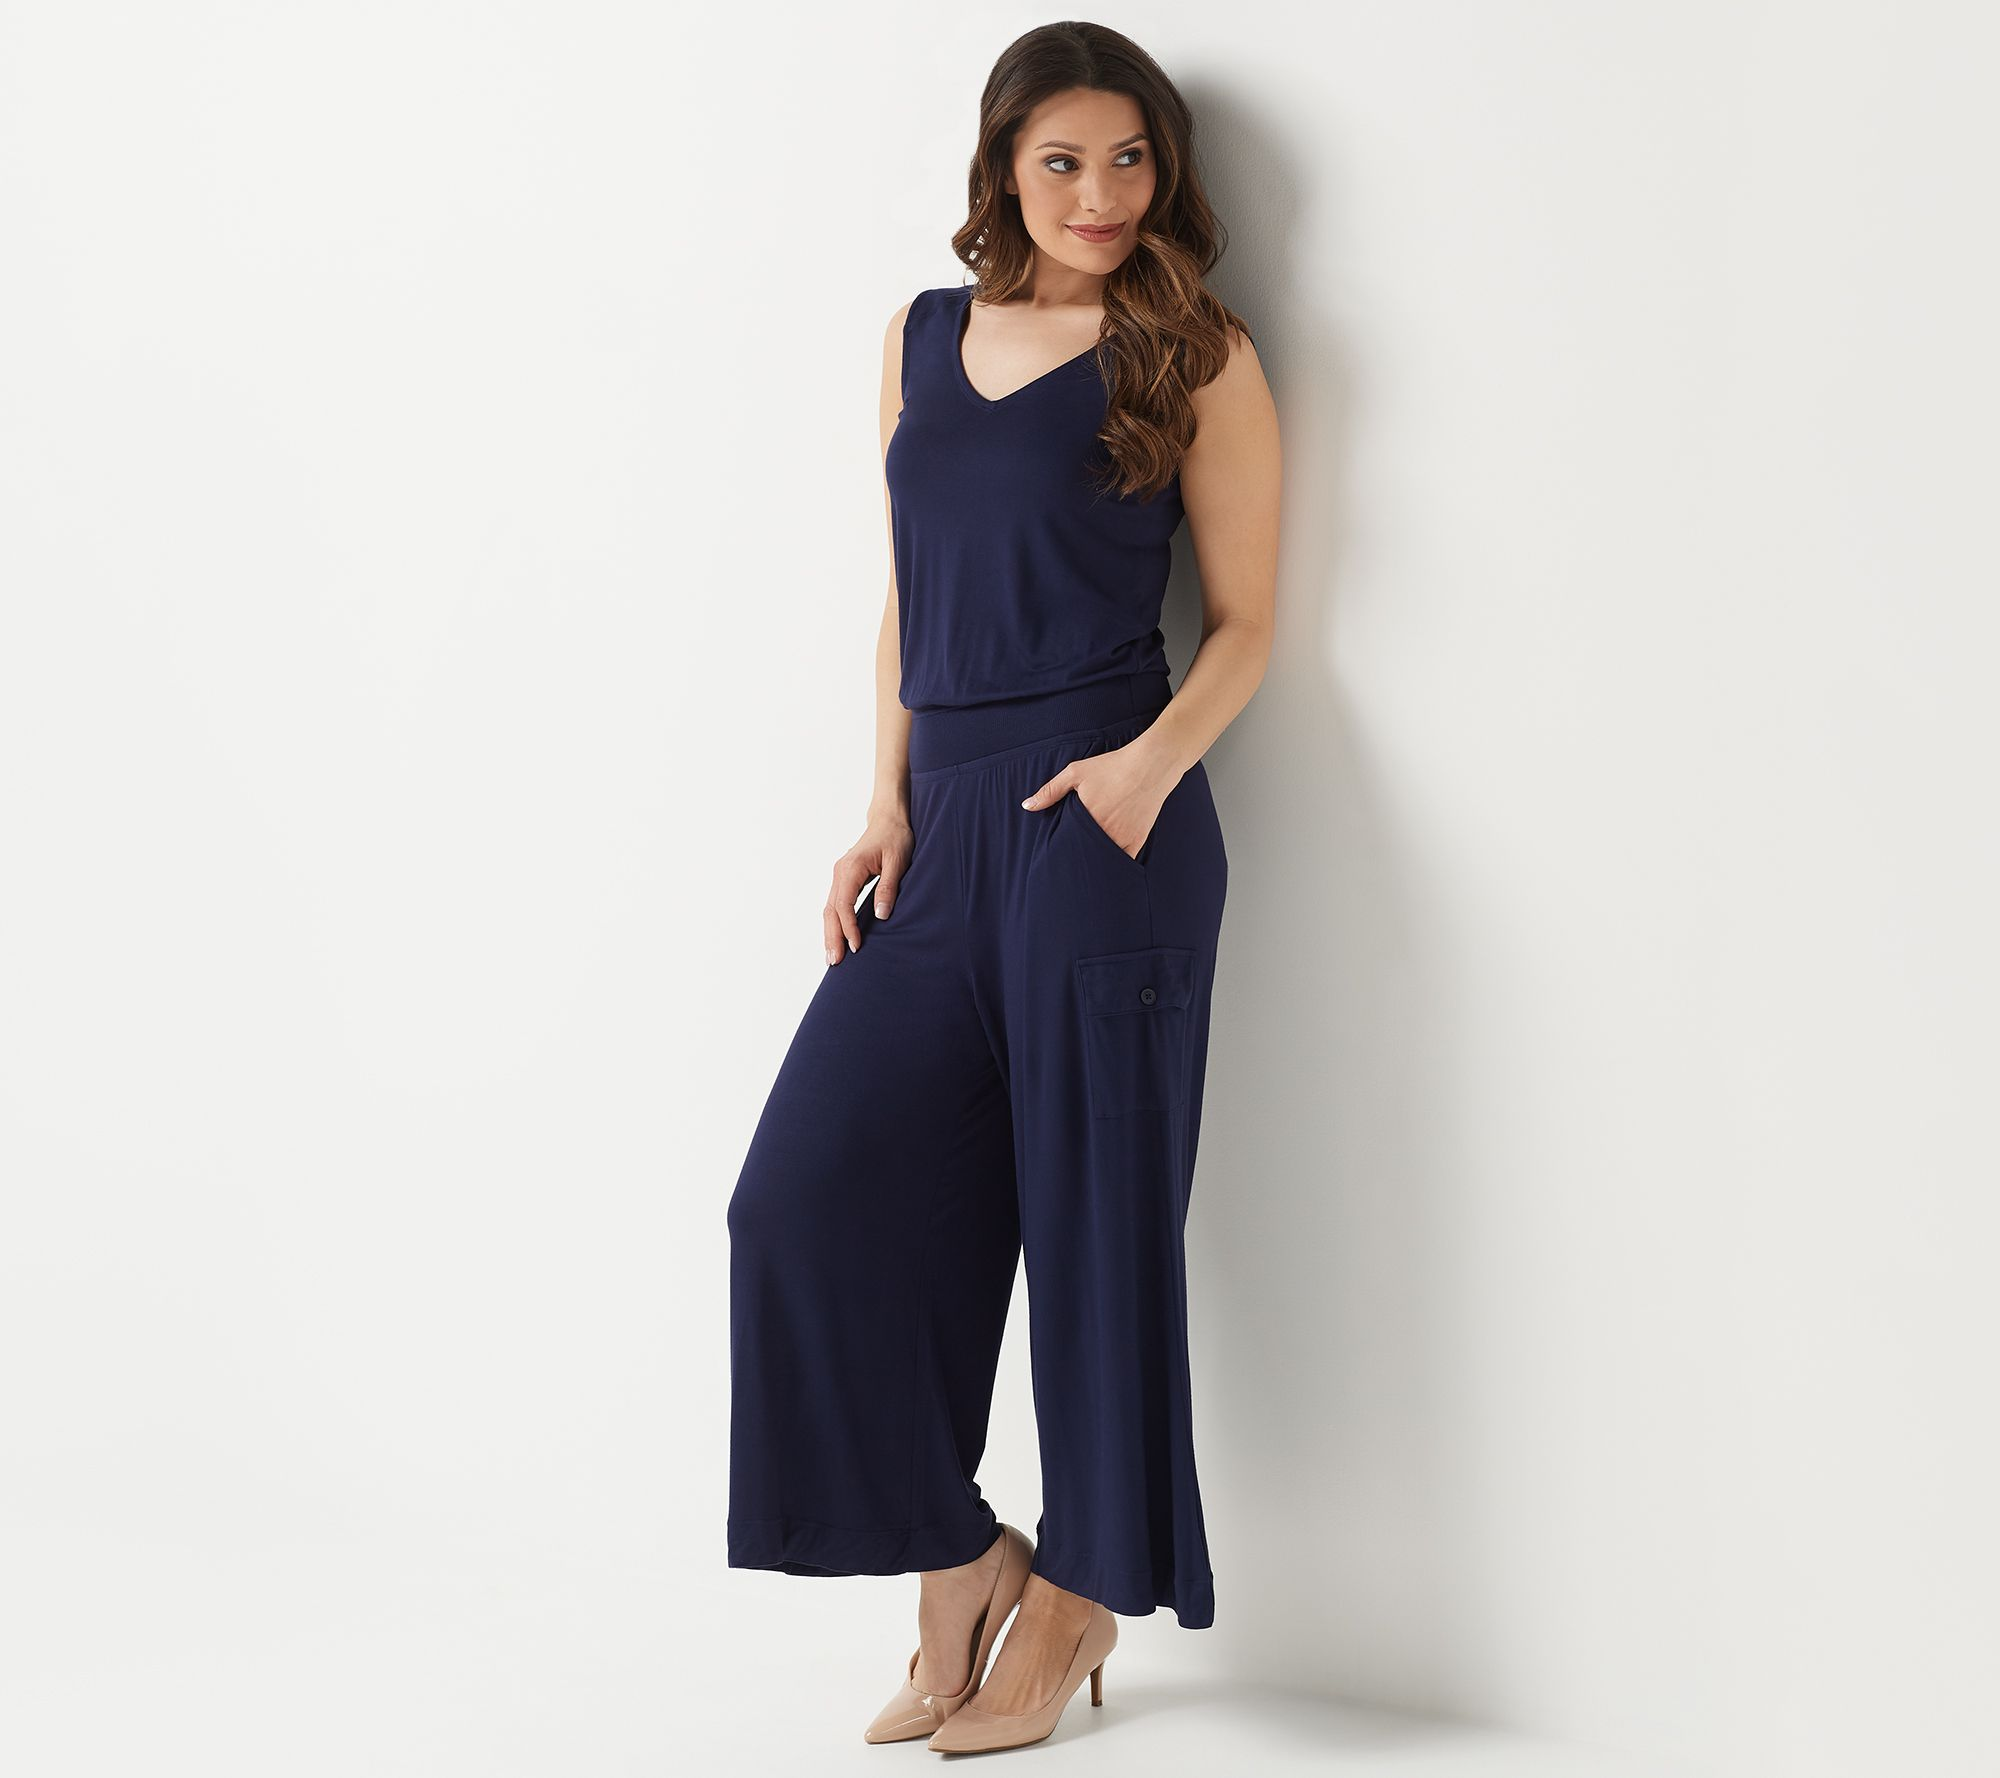 418aefd2e843ce Lisa Rinna Collection Jumpsuit - Page 1 — QVC.com